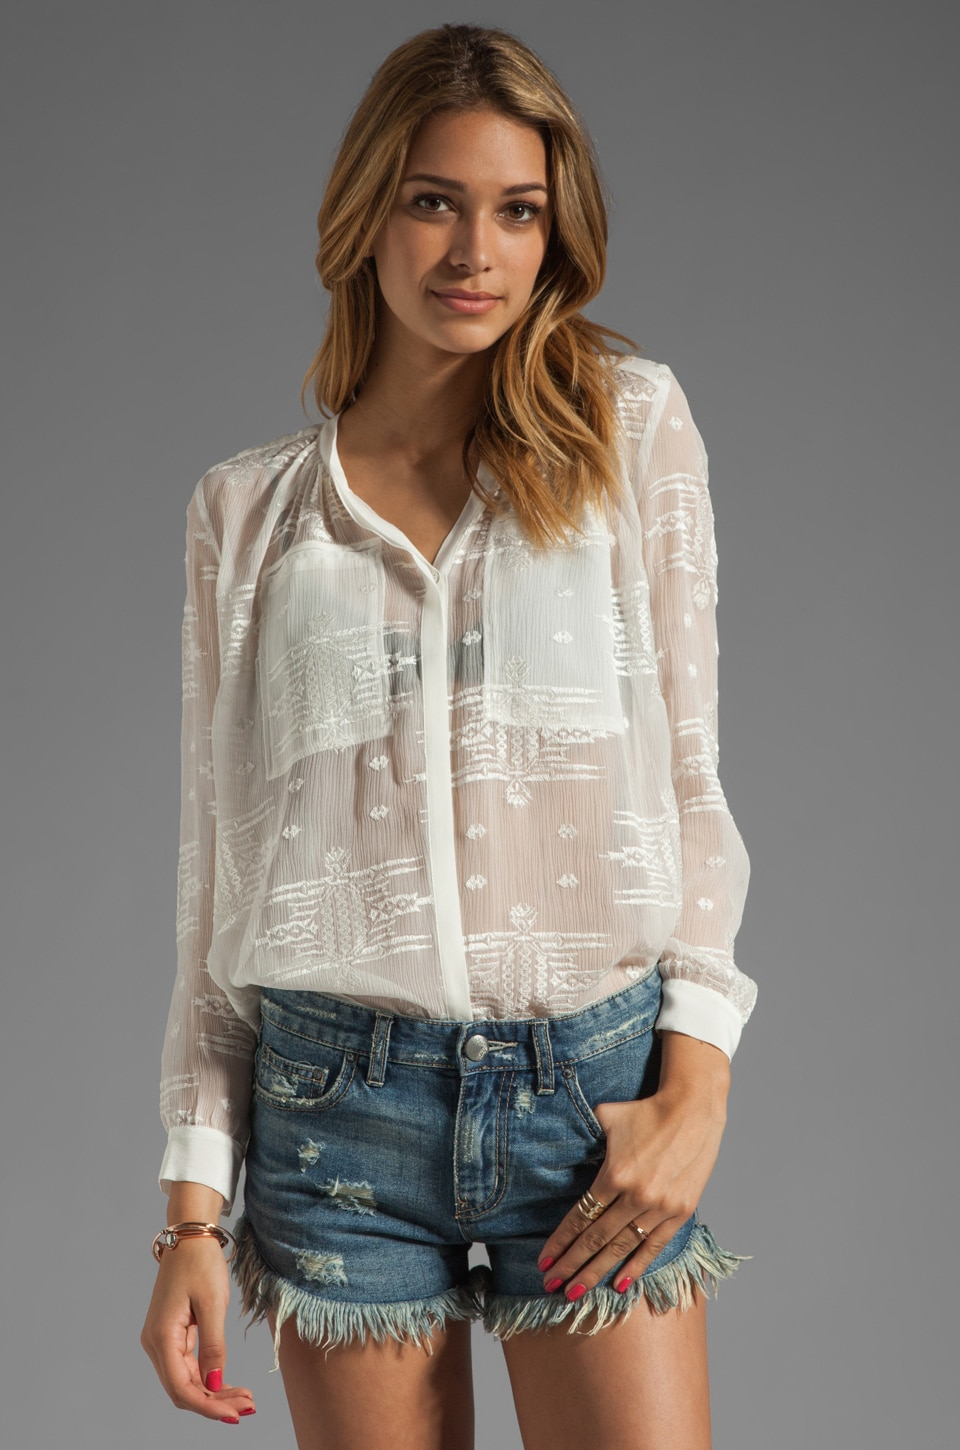 Rebecca Taylor RUNWAY Embroidered Shirt in Cream